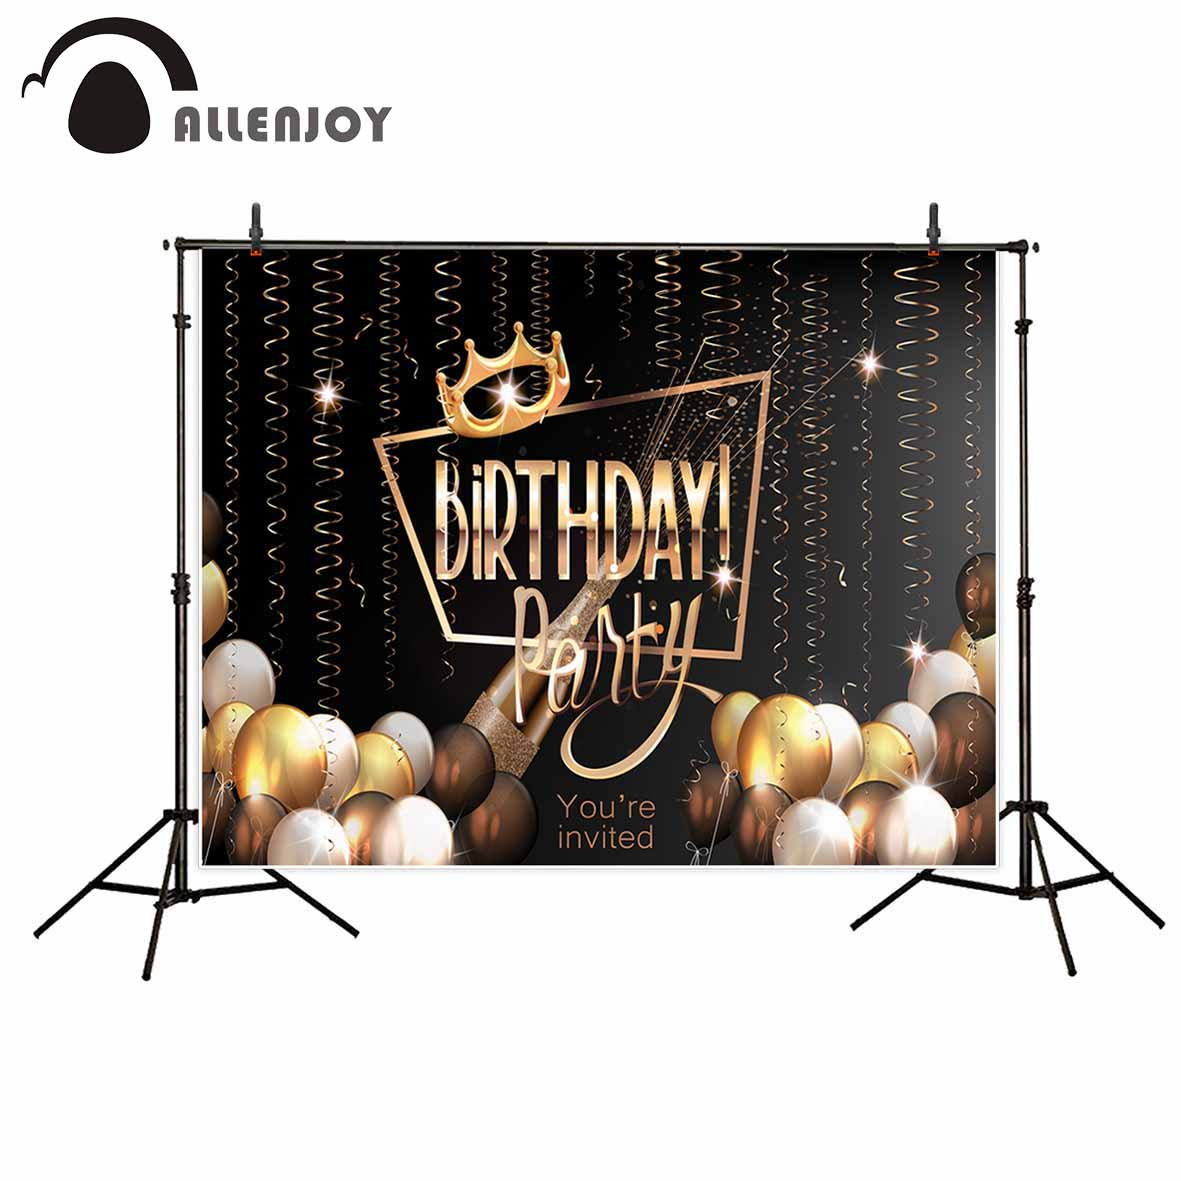 цена на Allenjoy vinyl photographic background Ball Ribbon Birthday Crown Custom Party new backdrop photocall photo printed customize